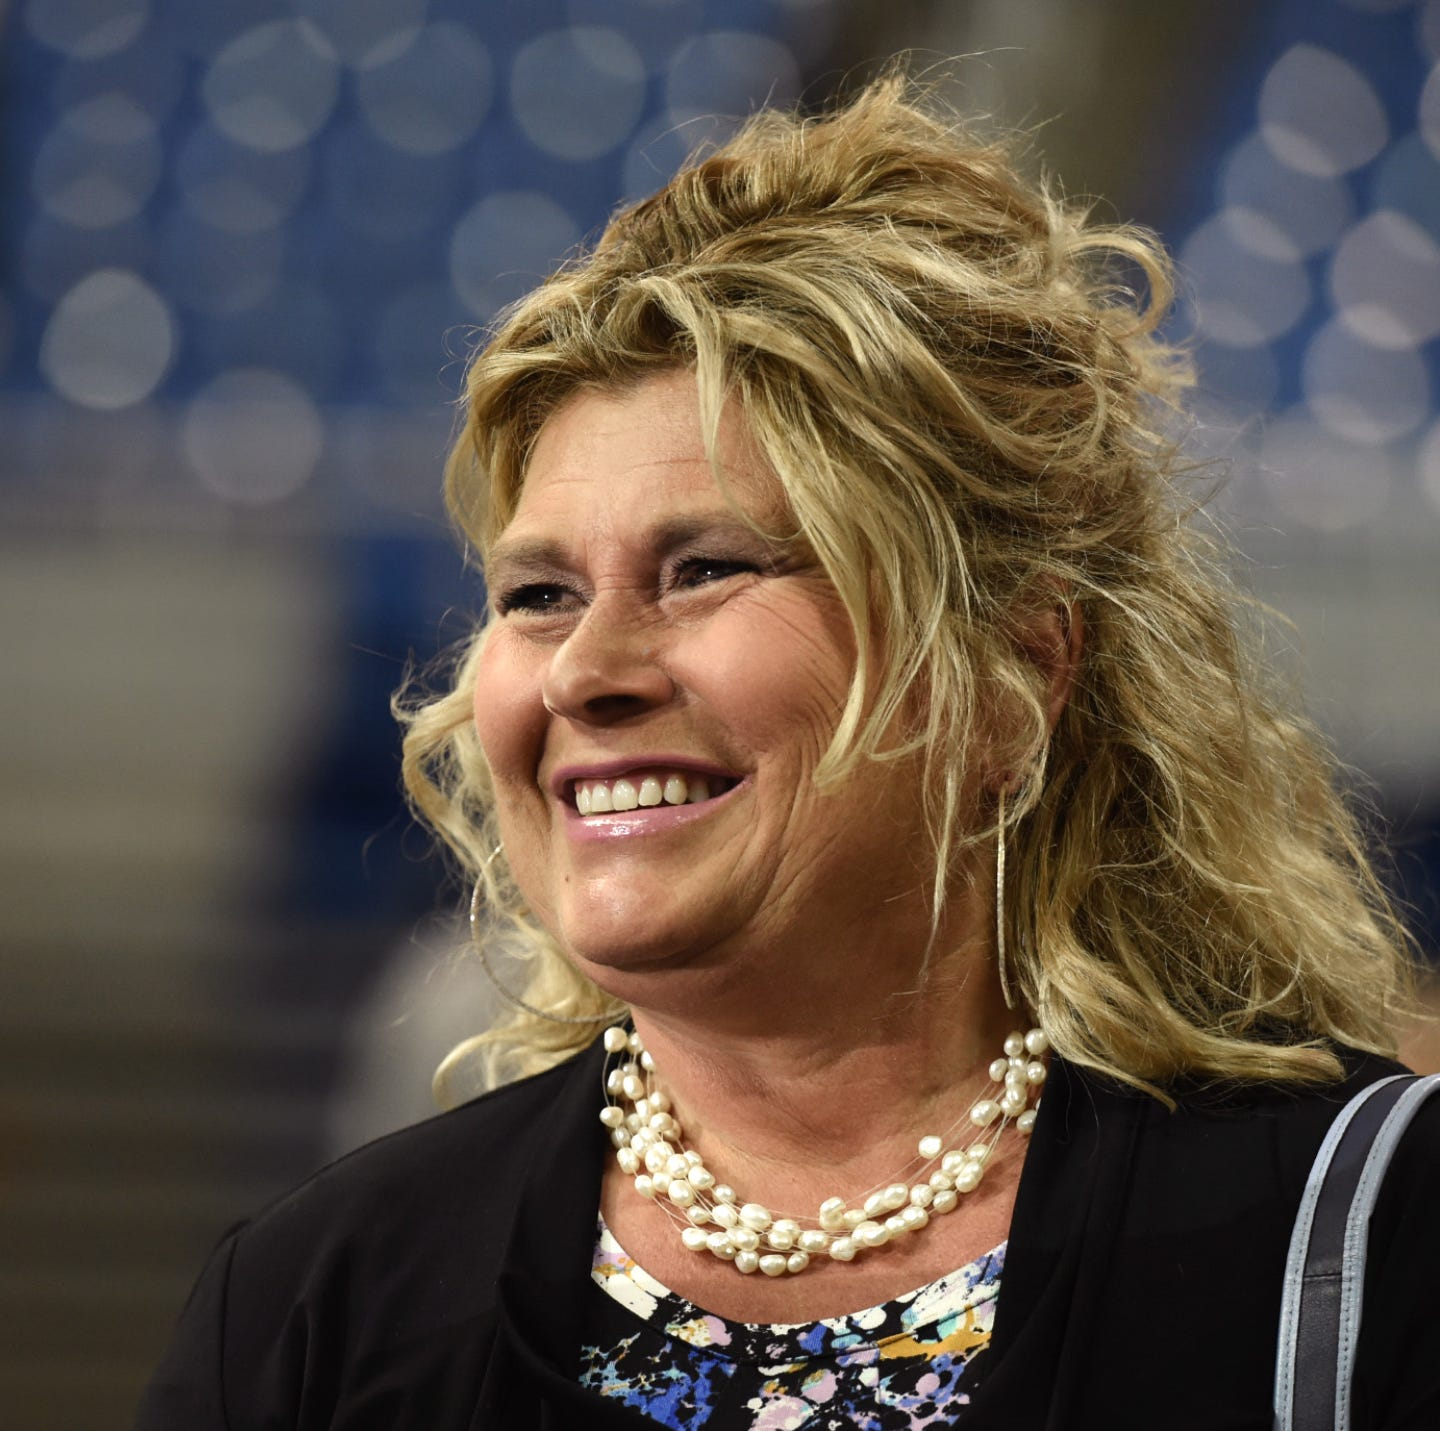 Tanya Alford, the new 'first lady' of Nevada basketball, will be the loudest one in Lawlor